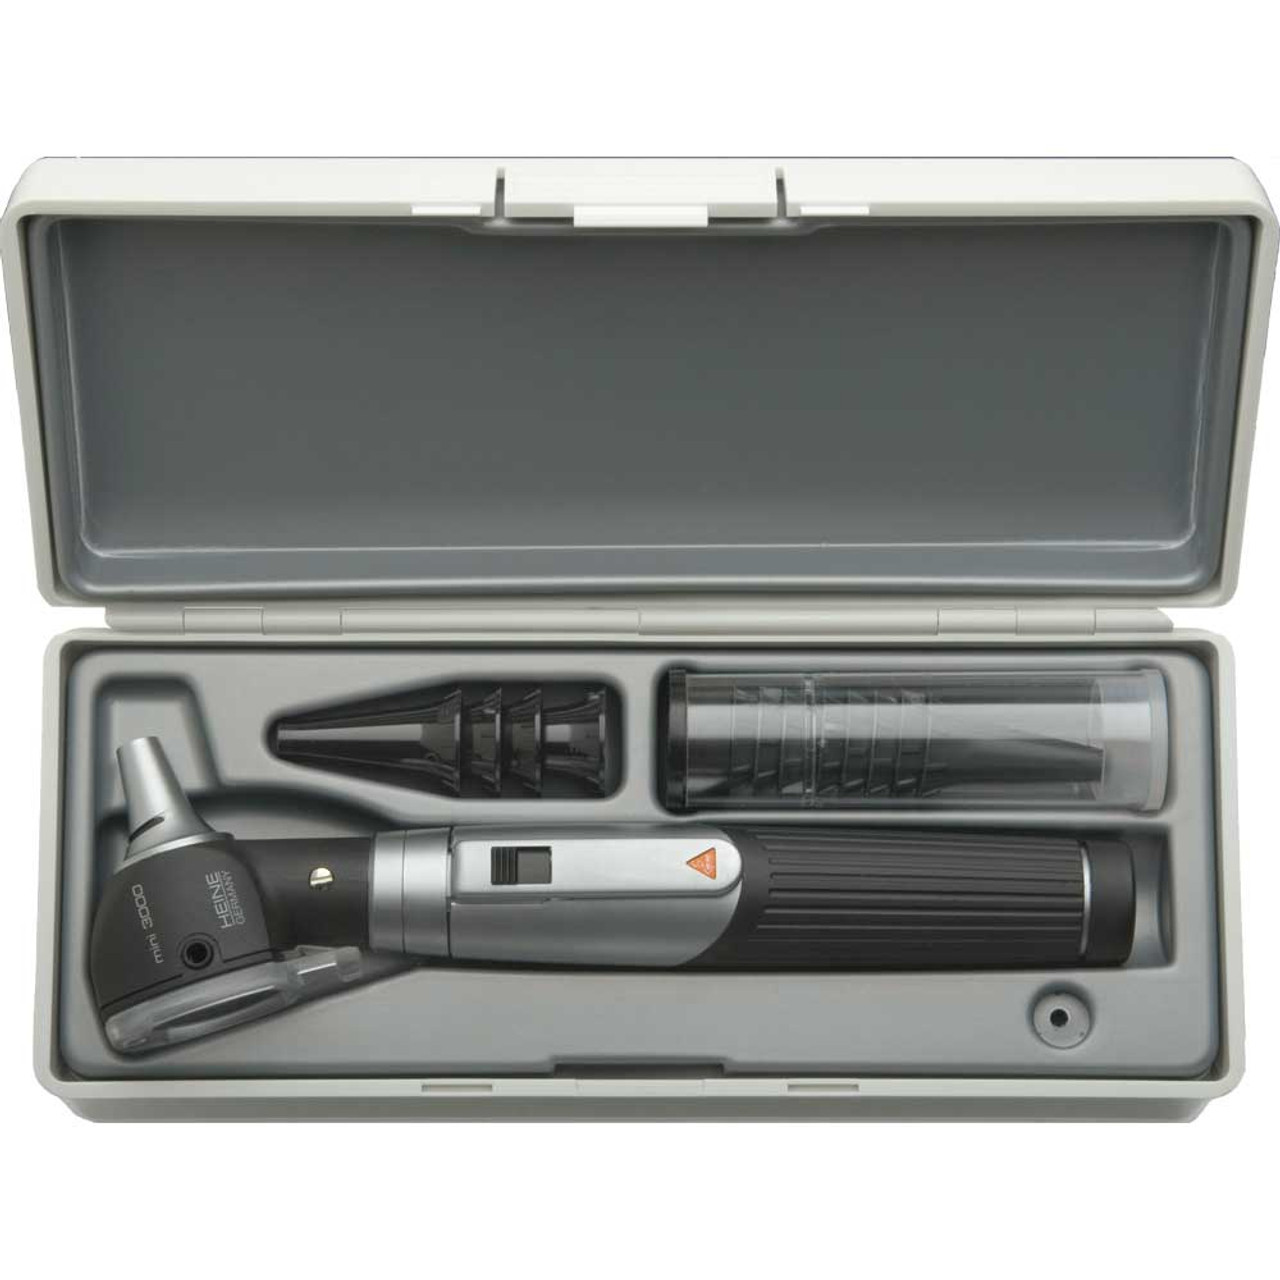 HEINE mini 3000 Otoscope Set (D-851.20.021)